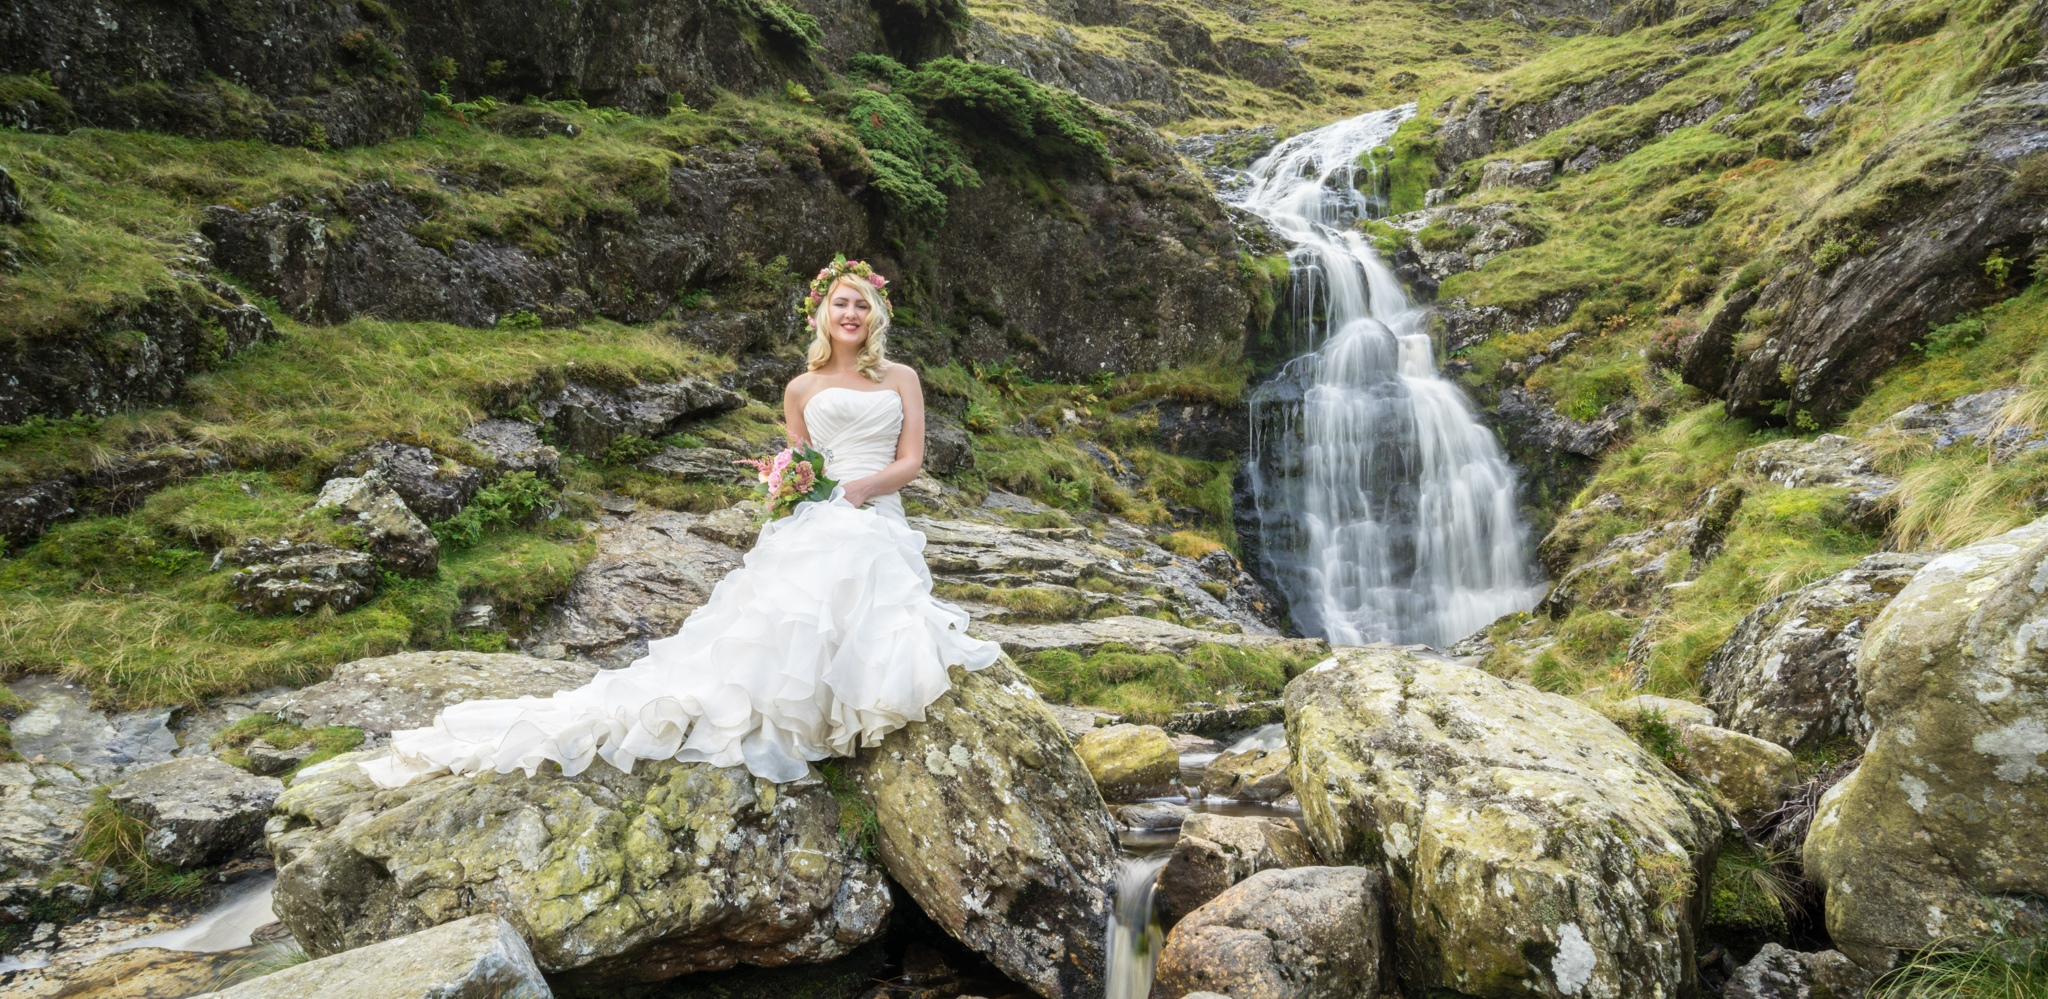 Waterfall. Wedding Photographer Edinburgh Our Dream Photography